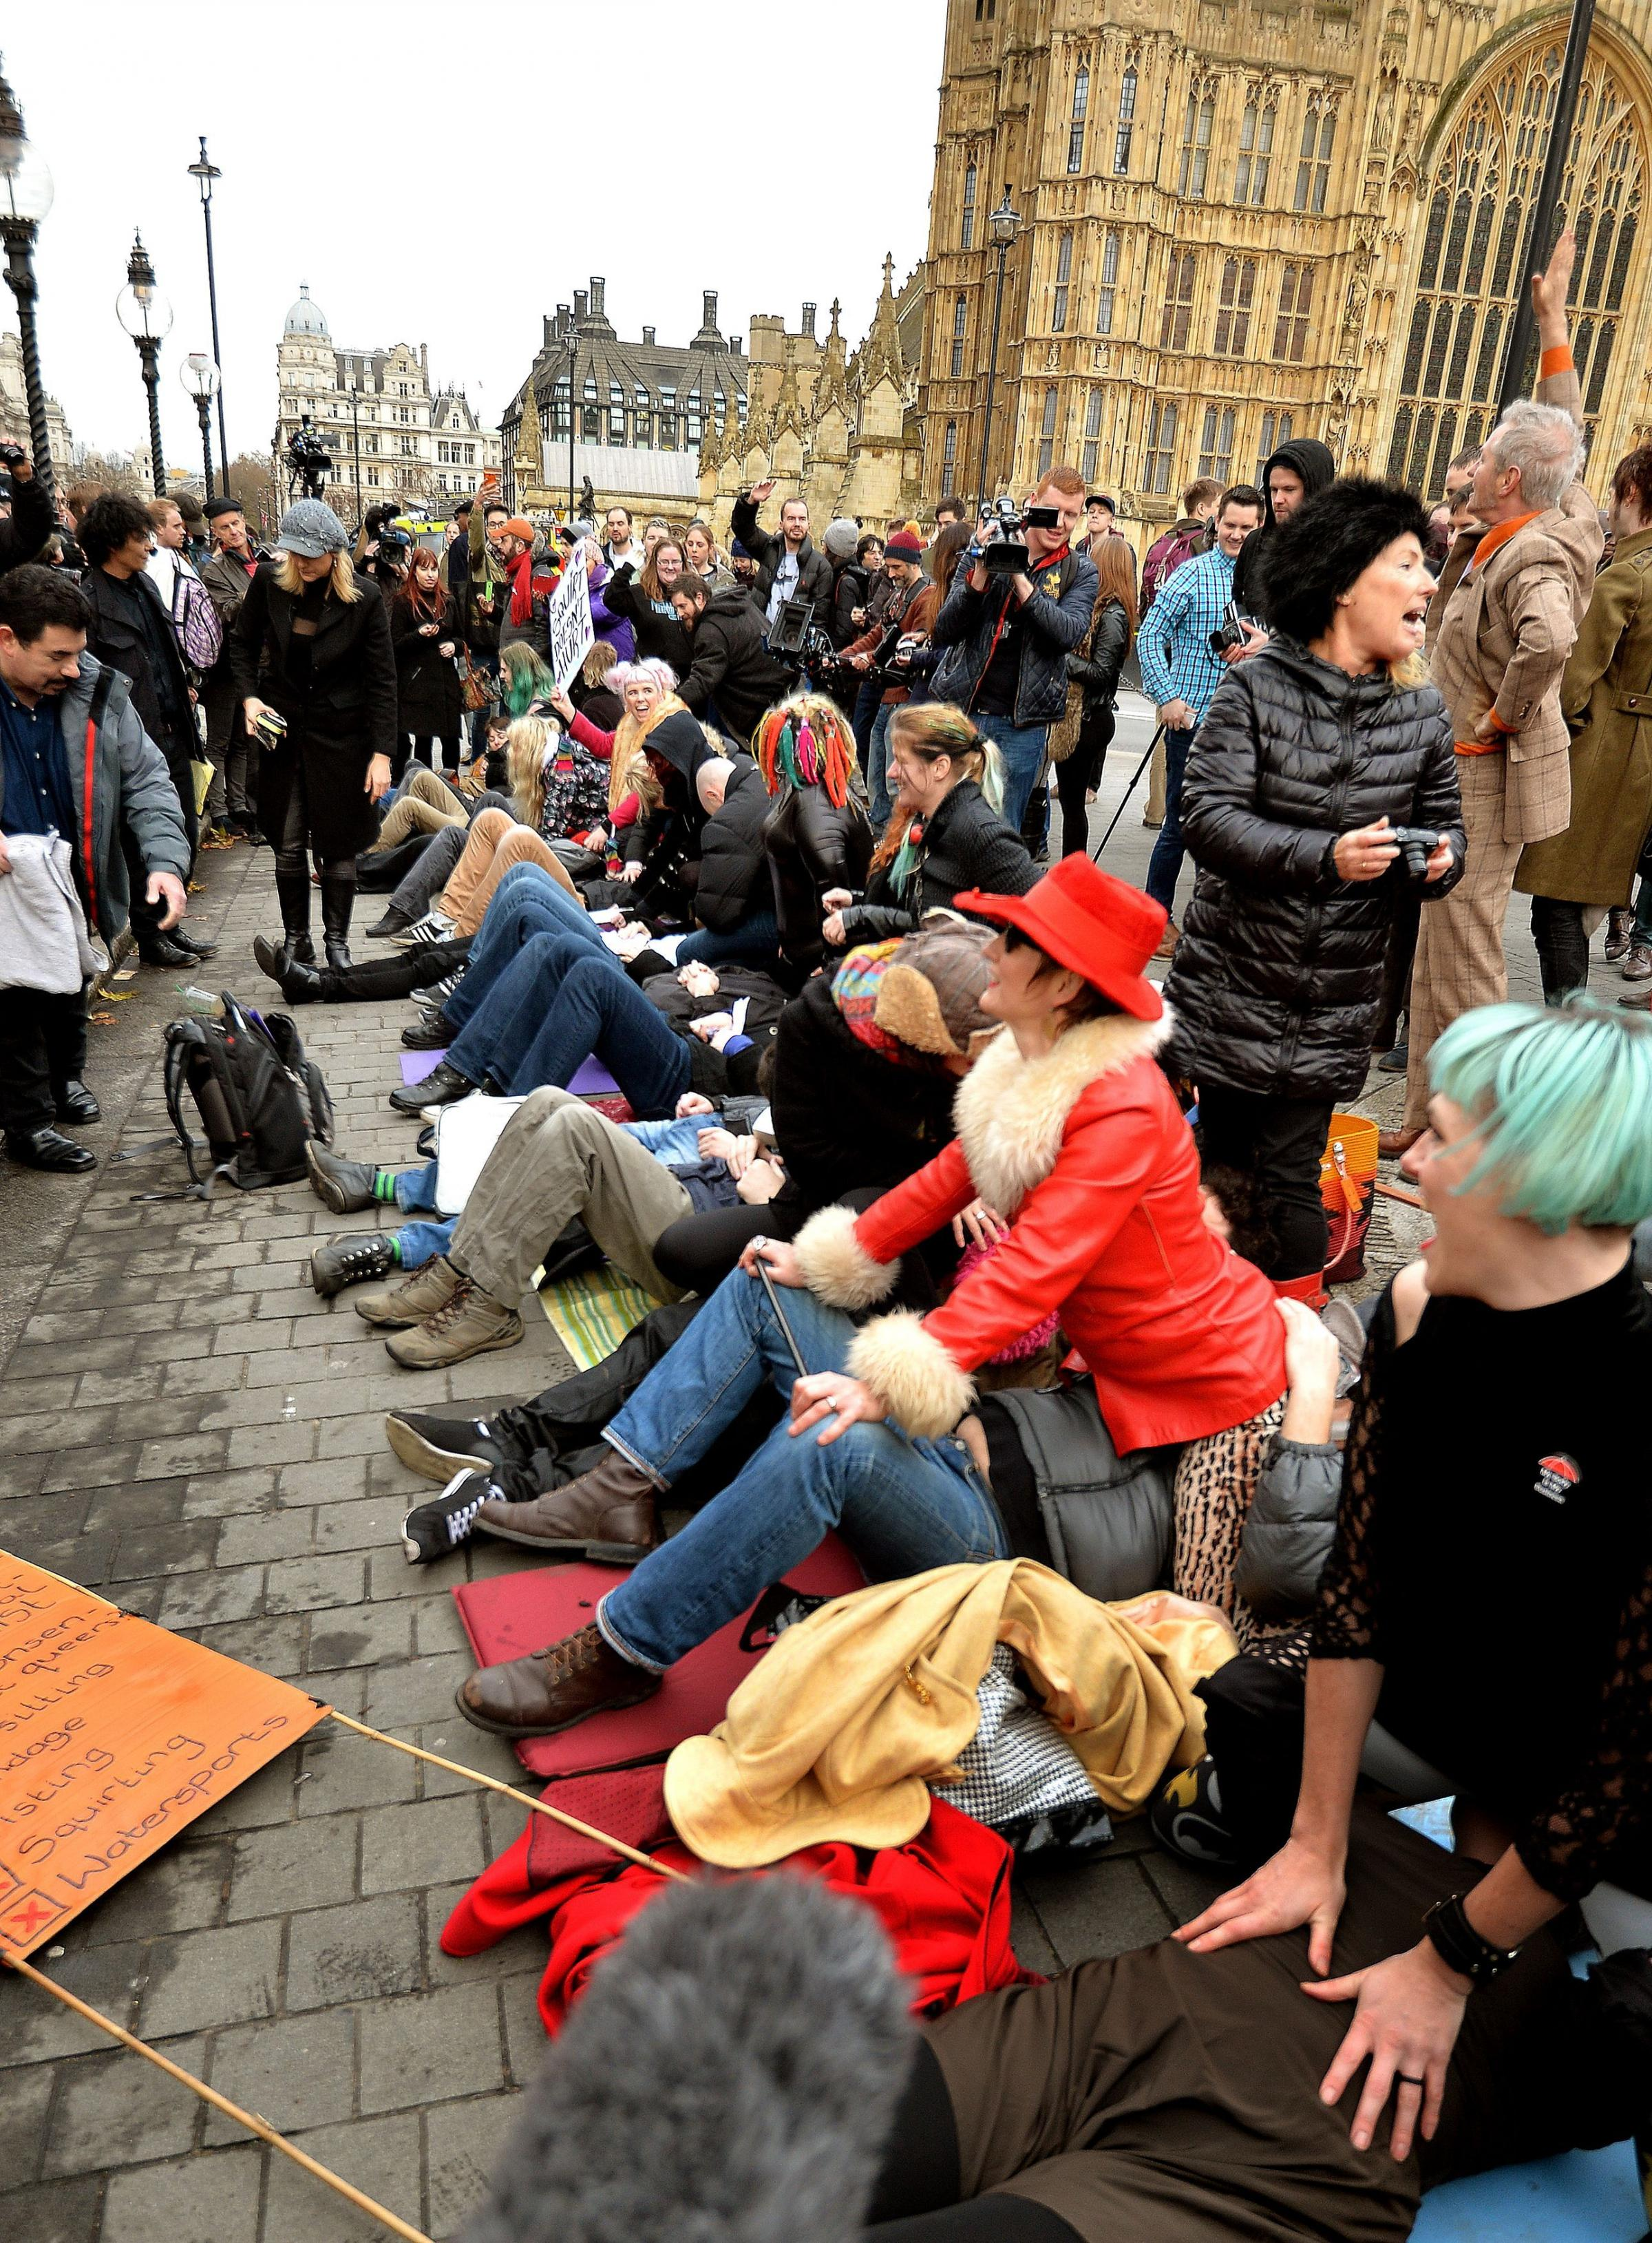 Feminists and adult movie stars hold an unusual protest outside the Commons